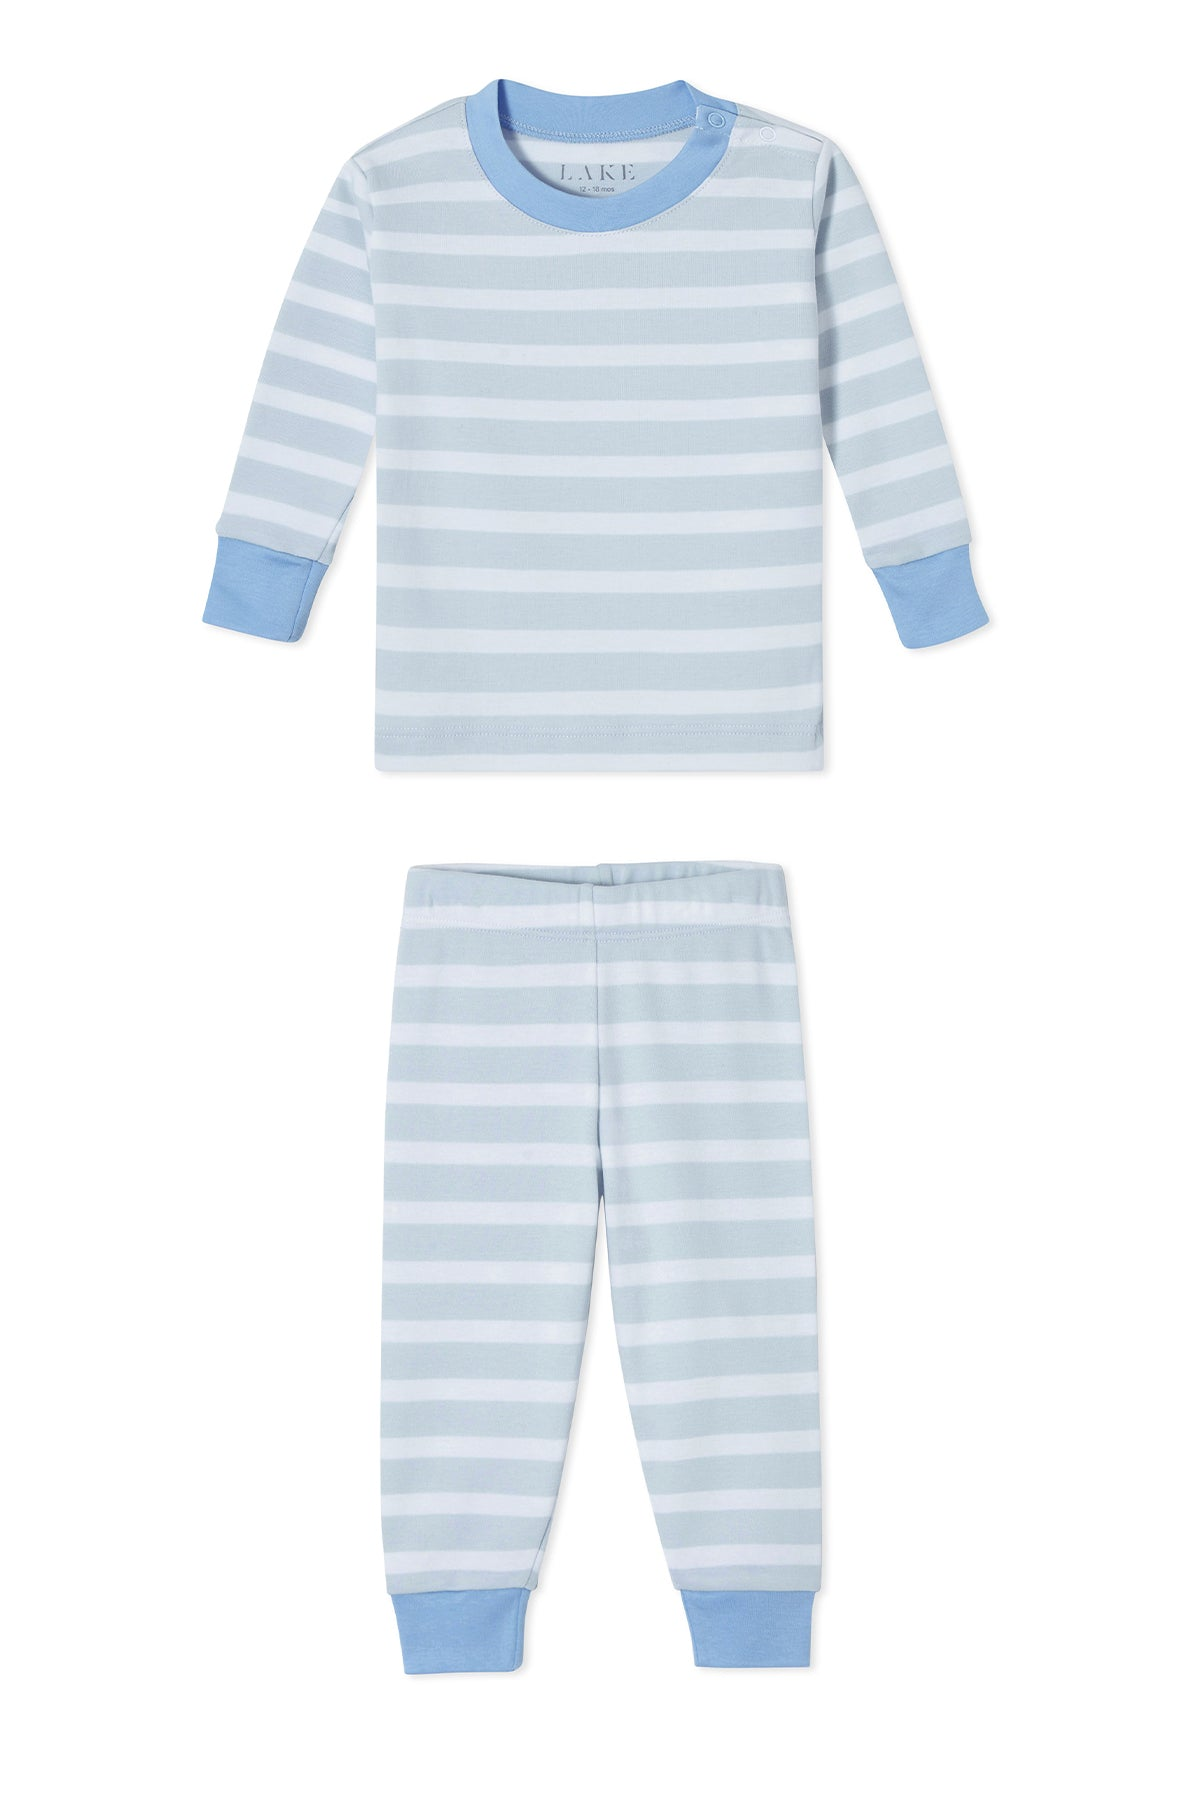 Baby Long-Long Set in Seaside